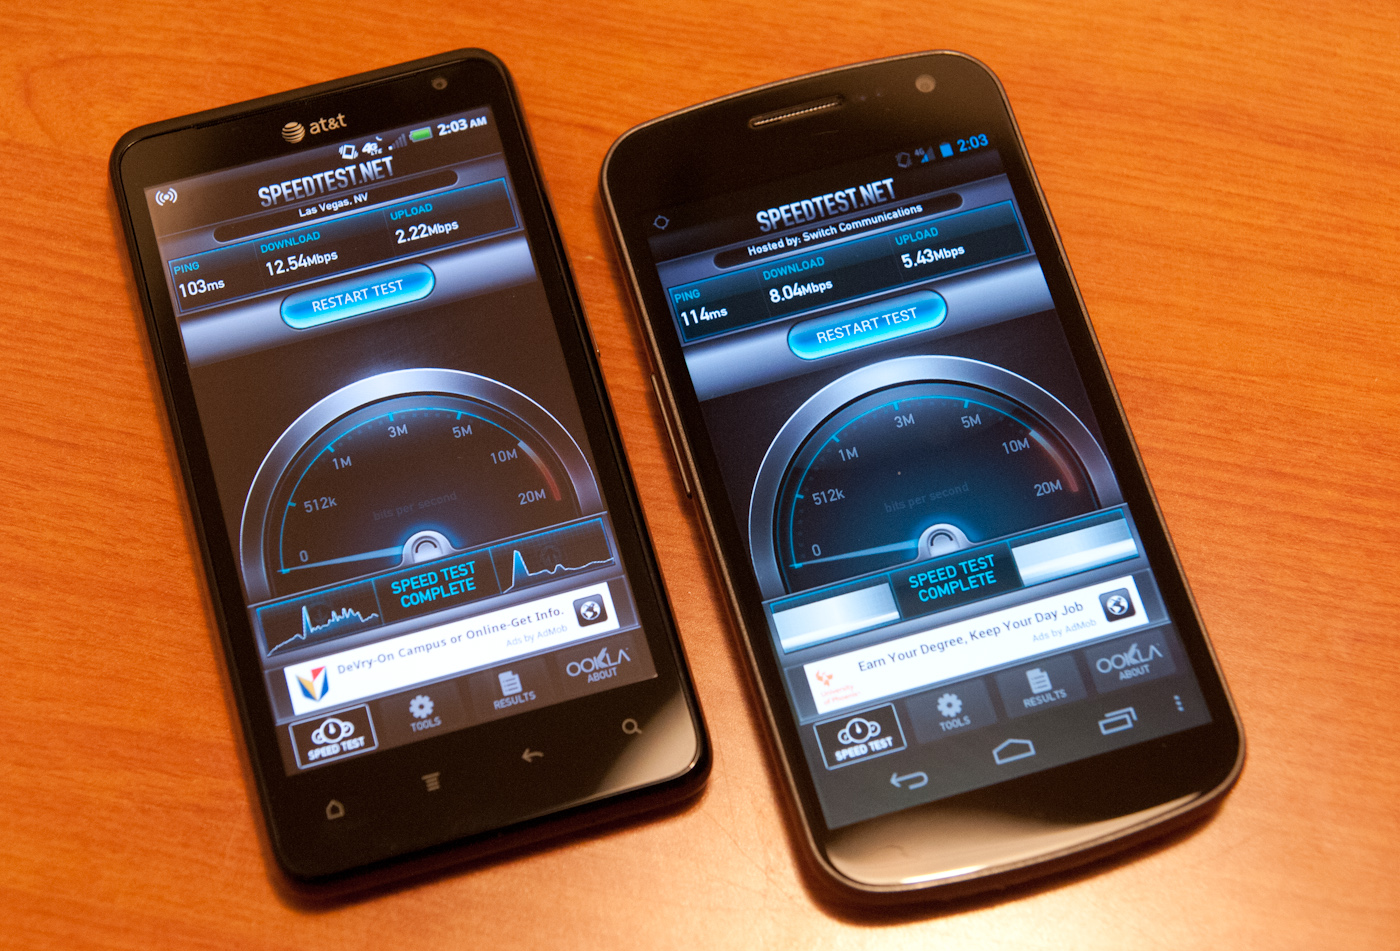 3g lte info 4g technology and tutorial lte ue category terminal capabilities baditri Gallery